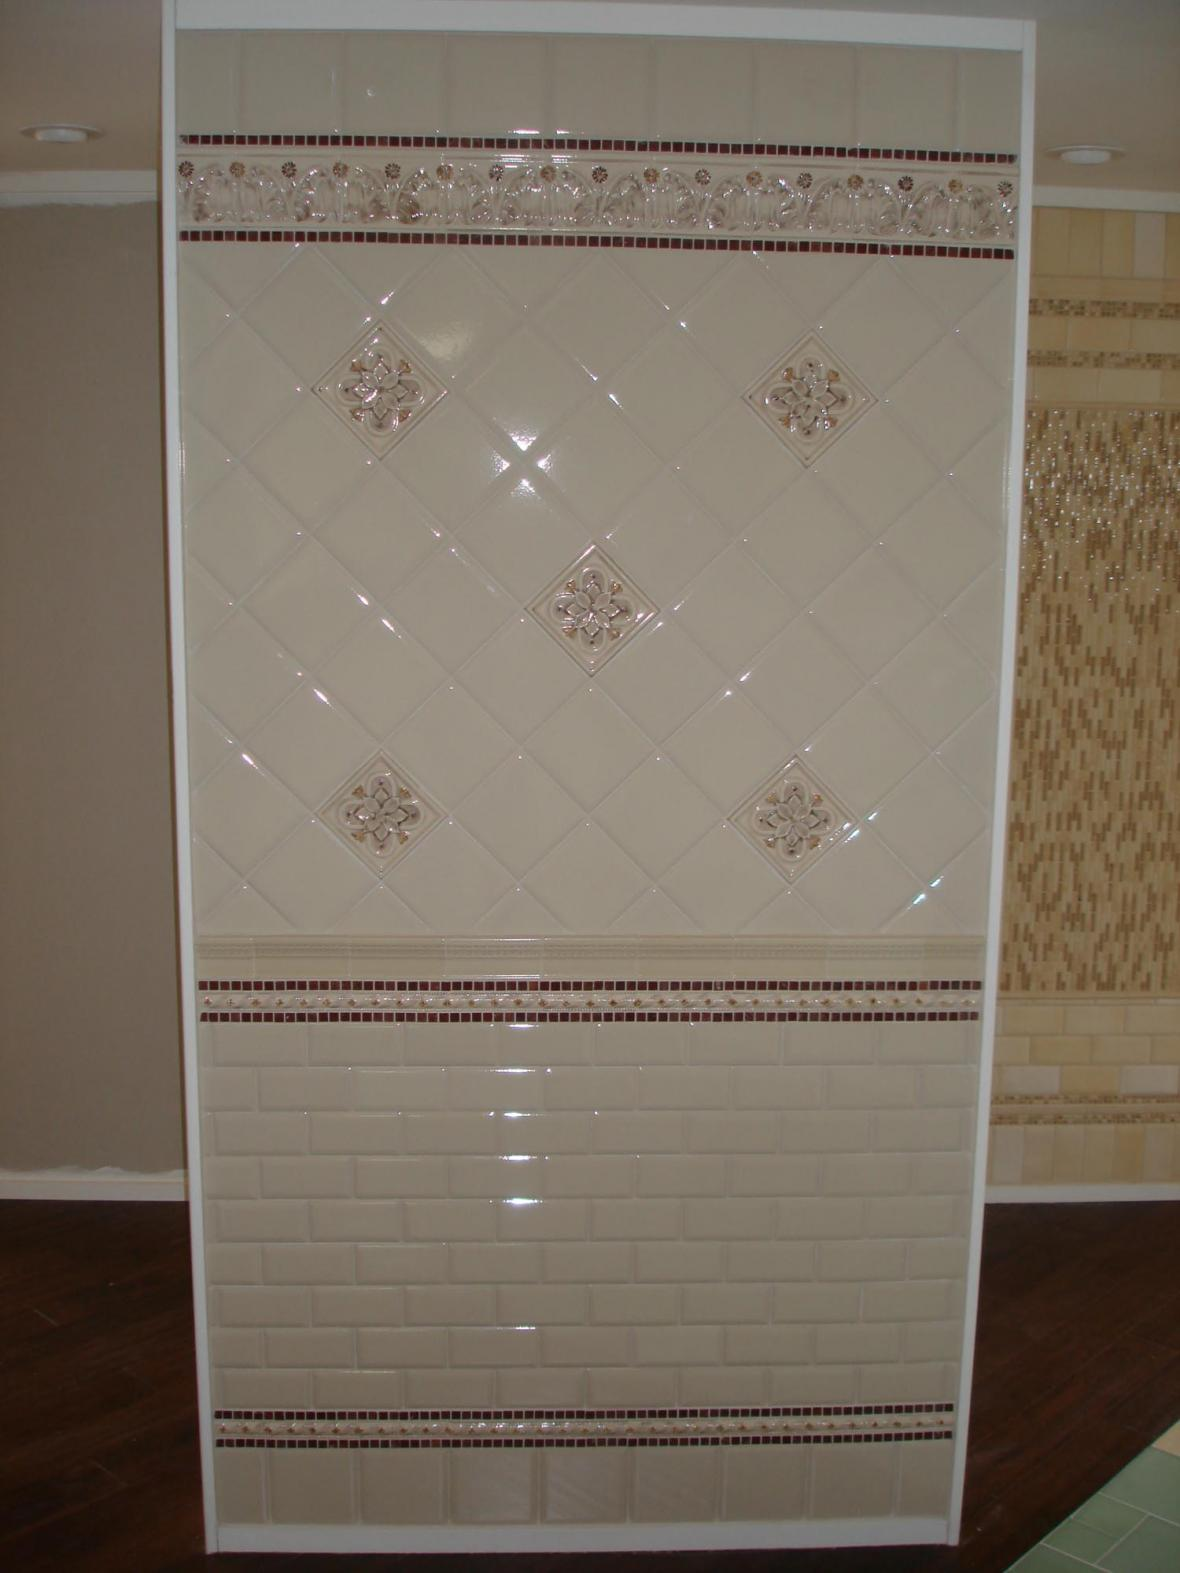 Porcelain tile wall display